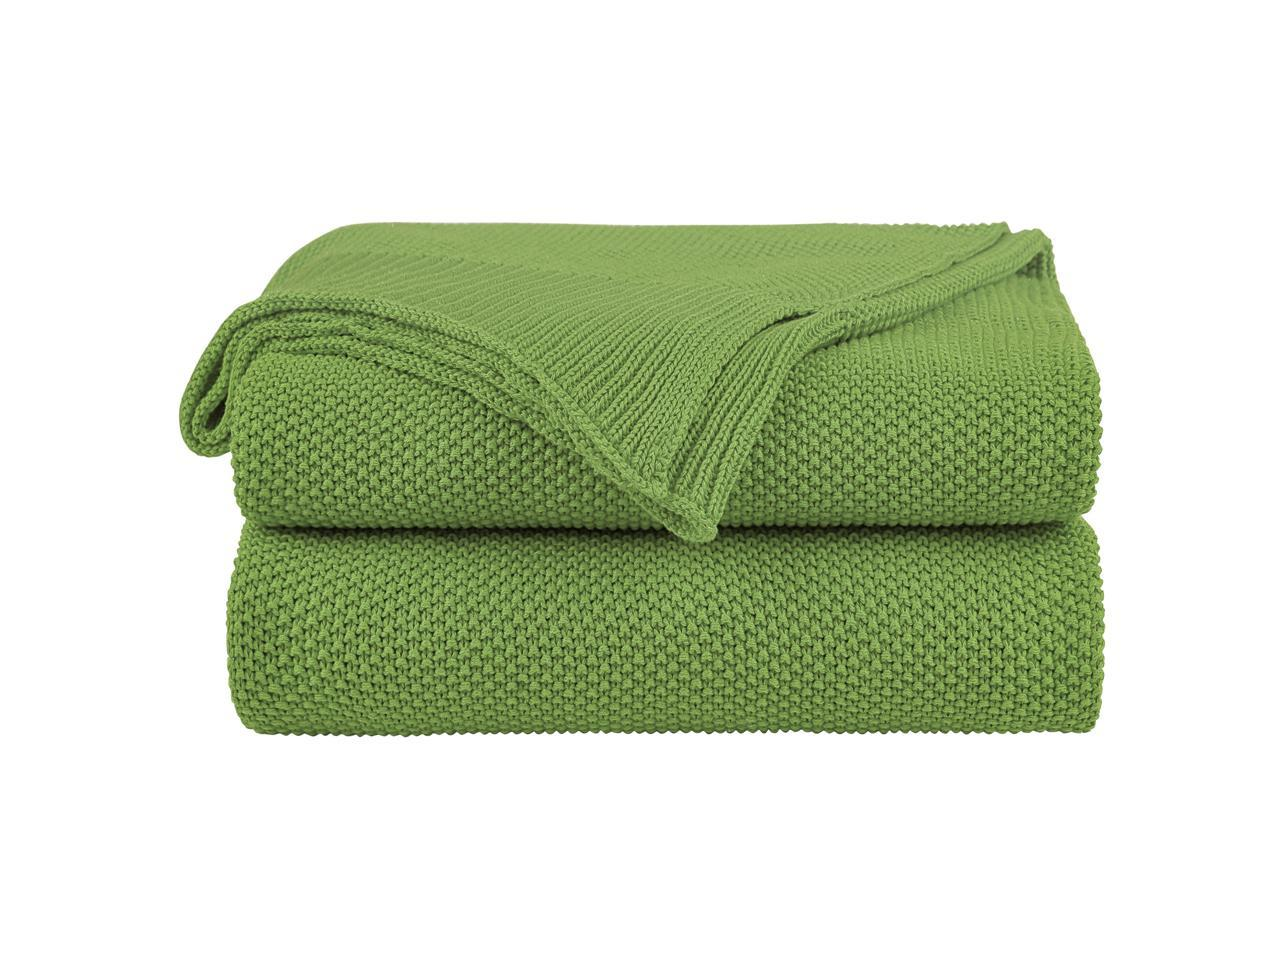 Knit Throw Blanket Cotton Moss Stitch Super Soft Warm Blanket for Couch Sofa